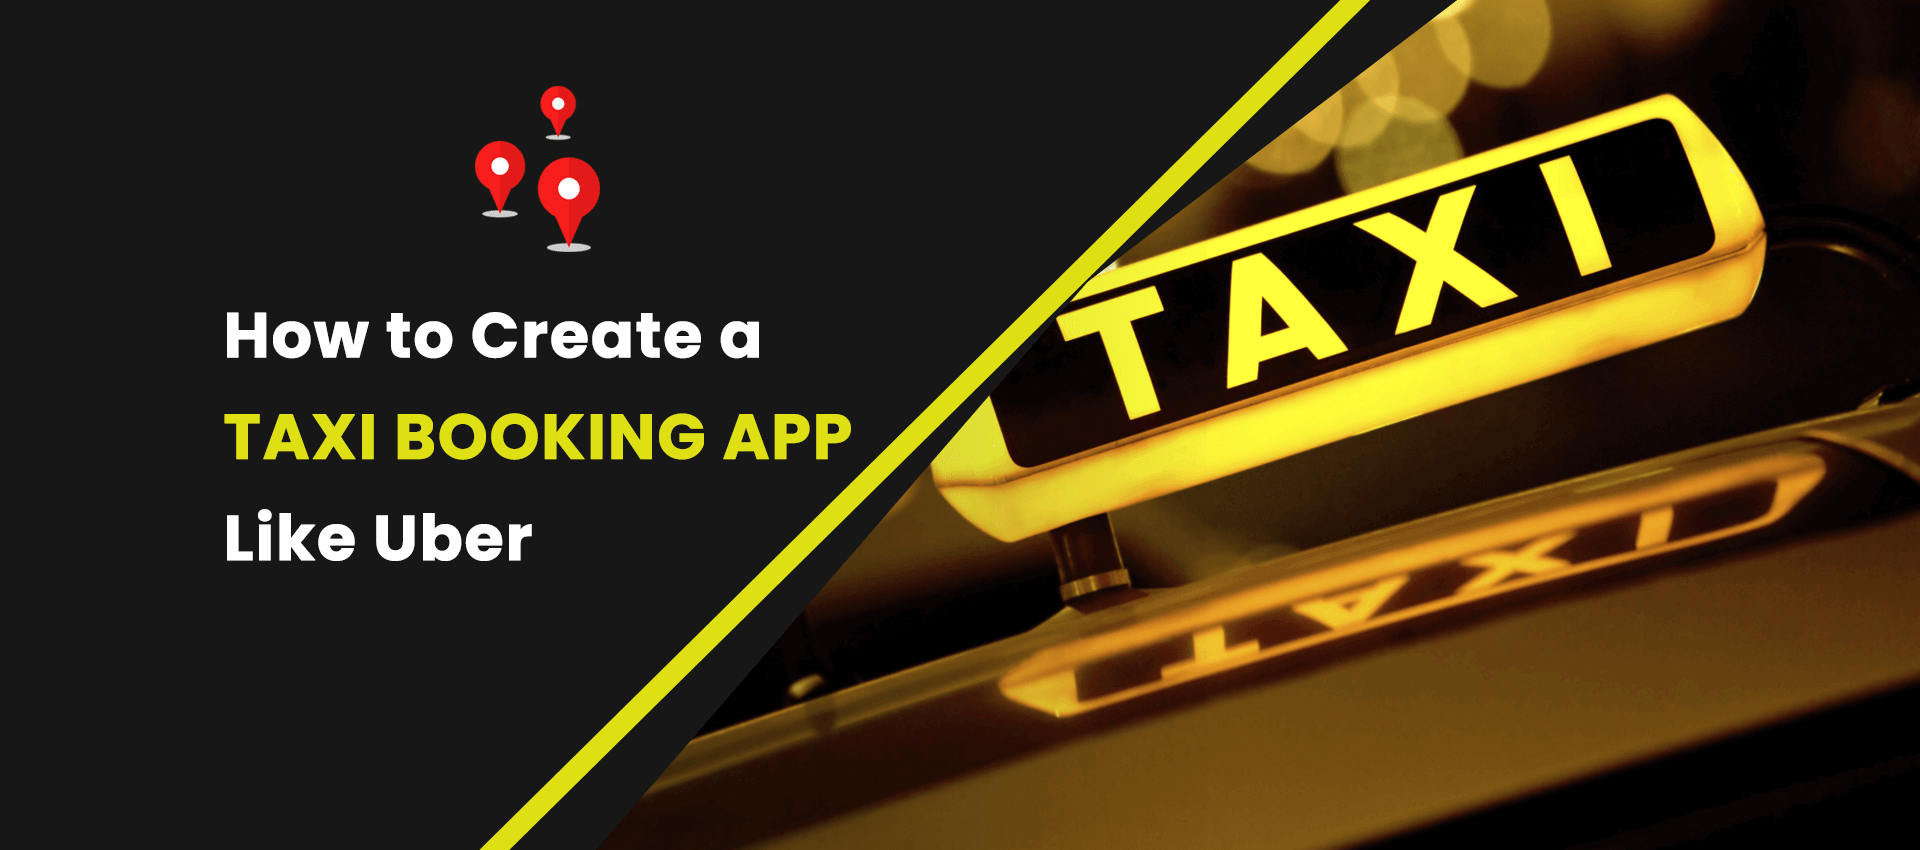 How to Create a Taxi Booking App Like Uber, Gett and Lyft